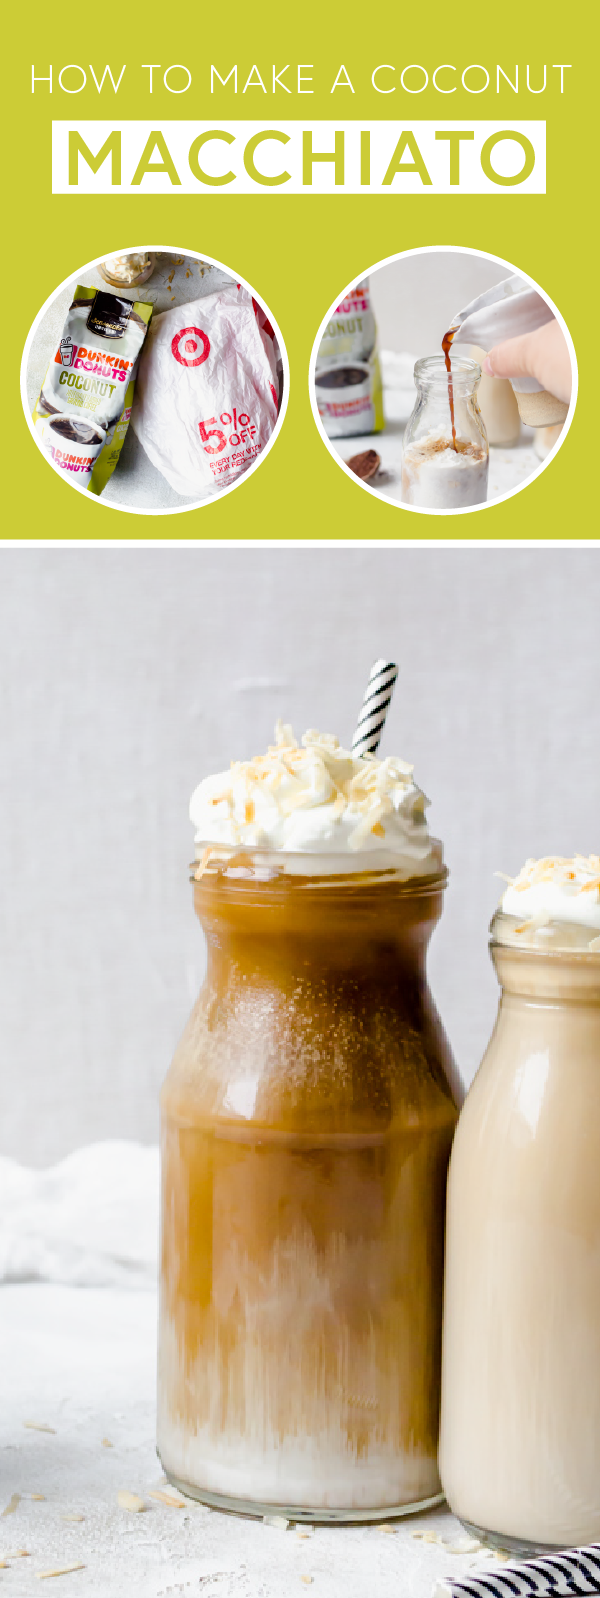 Give your favorite coffee drink a flavorful twist with the